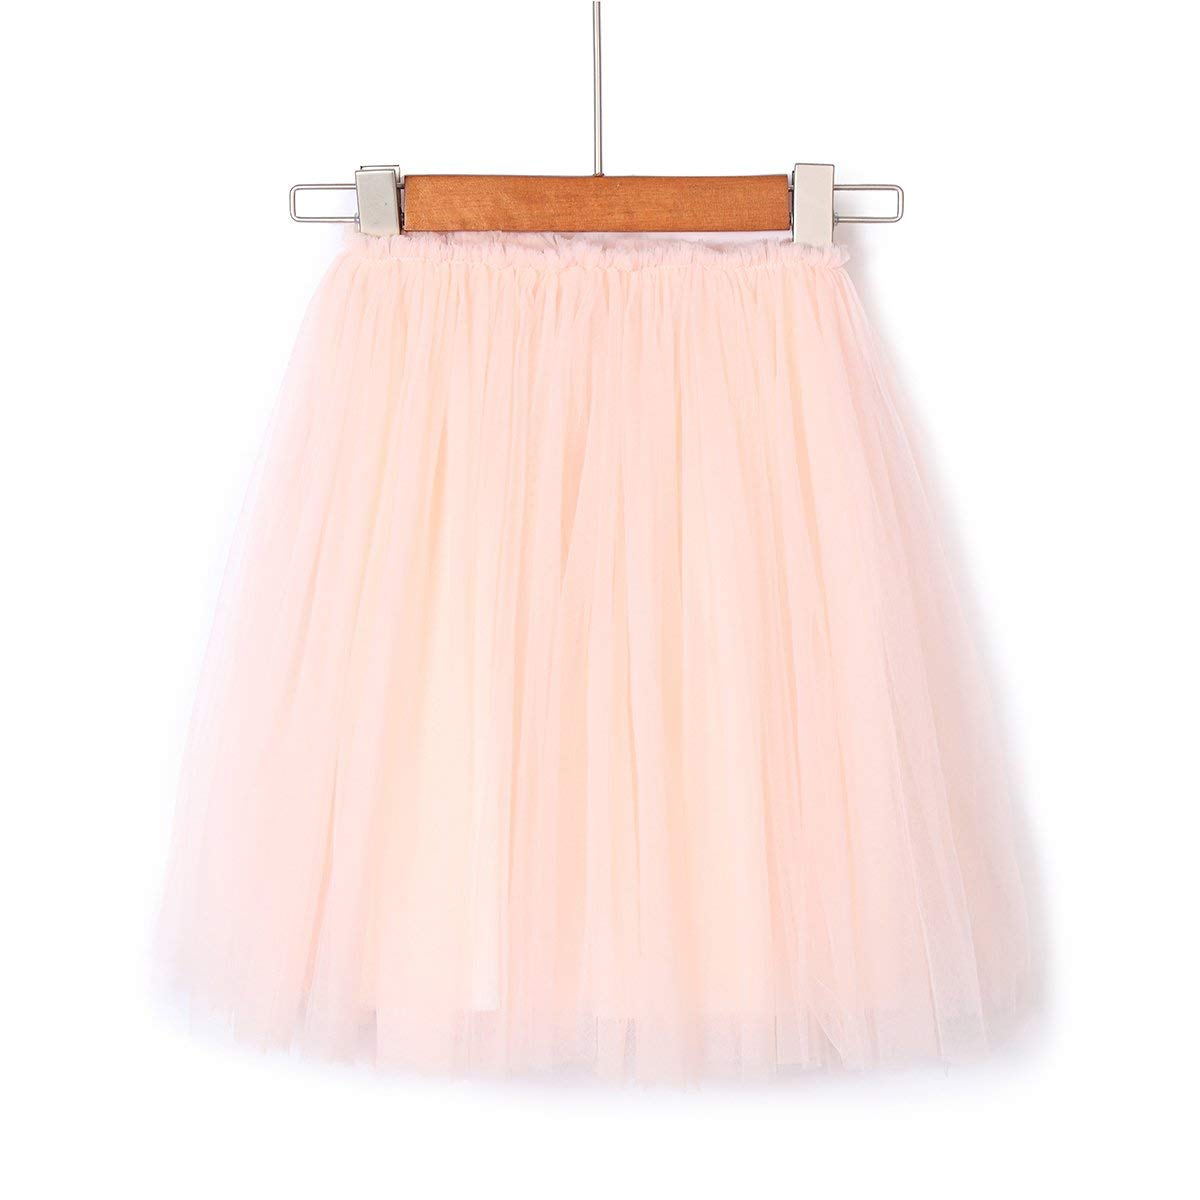 Flofallzique Long Tulle Girls Skirt Ankle Length 1-9 Year Old Toddler Skirt Dancing Skirt Puffy Tutu Skirt for Baby